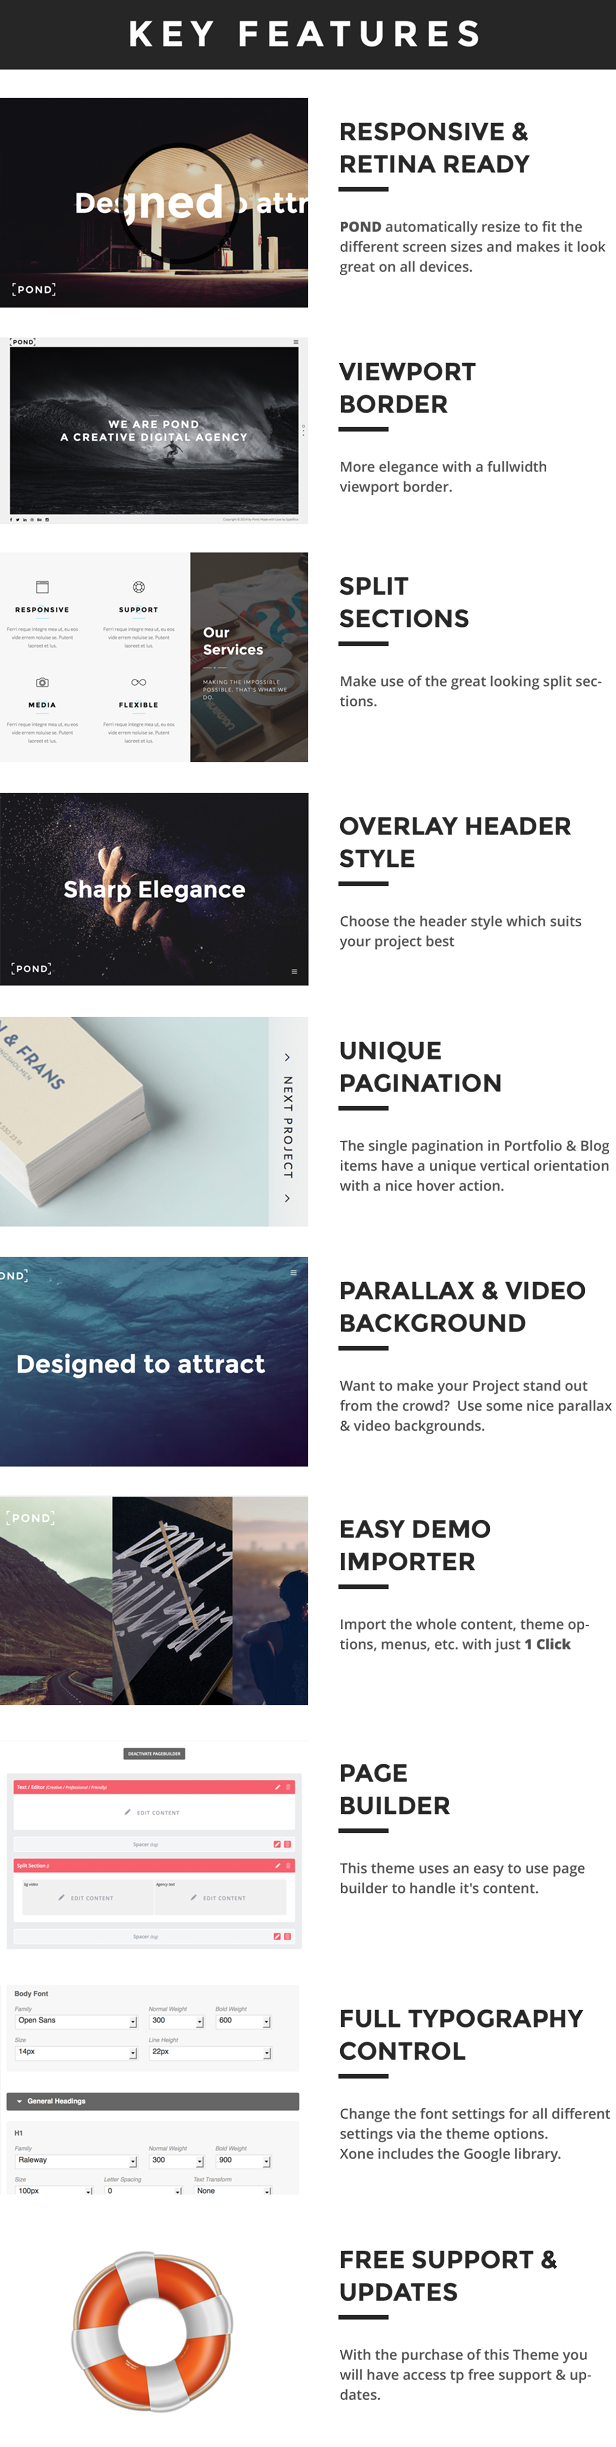 Pond - Creative Portfolio / Agency WordPress Theme - 6